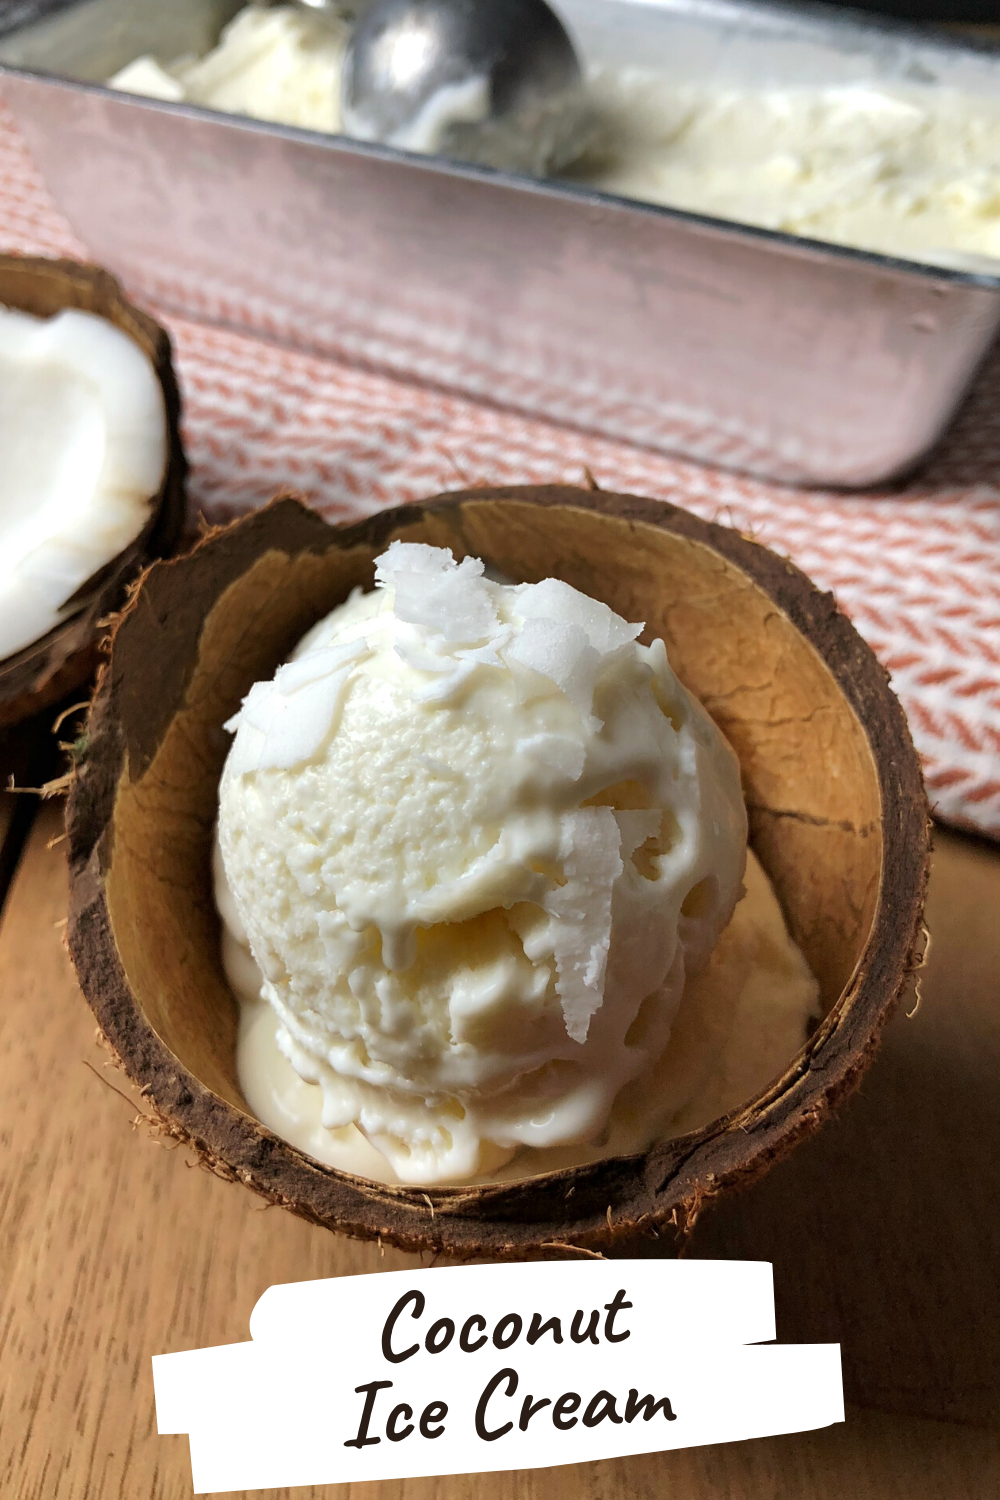 Coconut Ice Cream Tempting Treat Recipe In 2020 Coconut Ice Cream Homemade Ice Cream Ice Cream